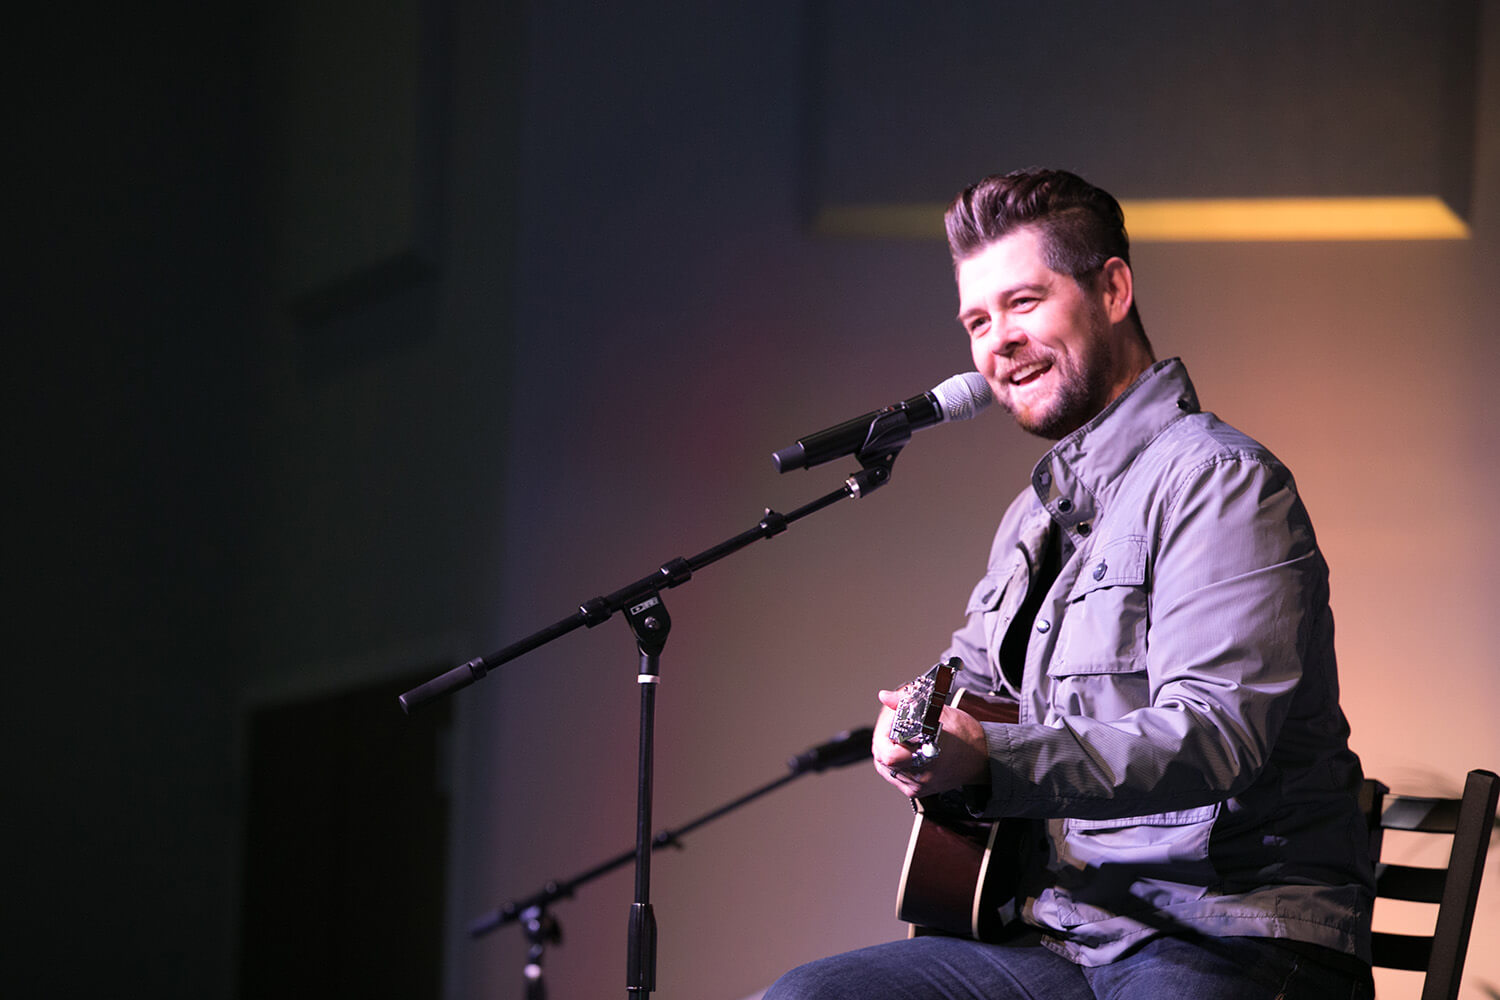 Jason Crabb leading worship at Friends Sharing Friends.